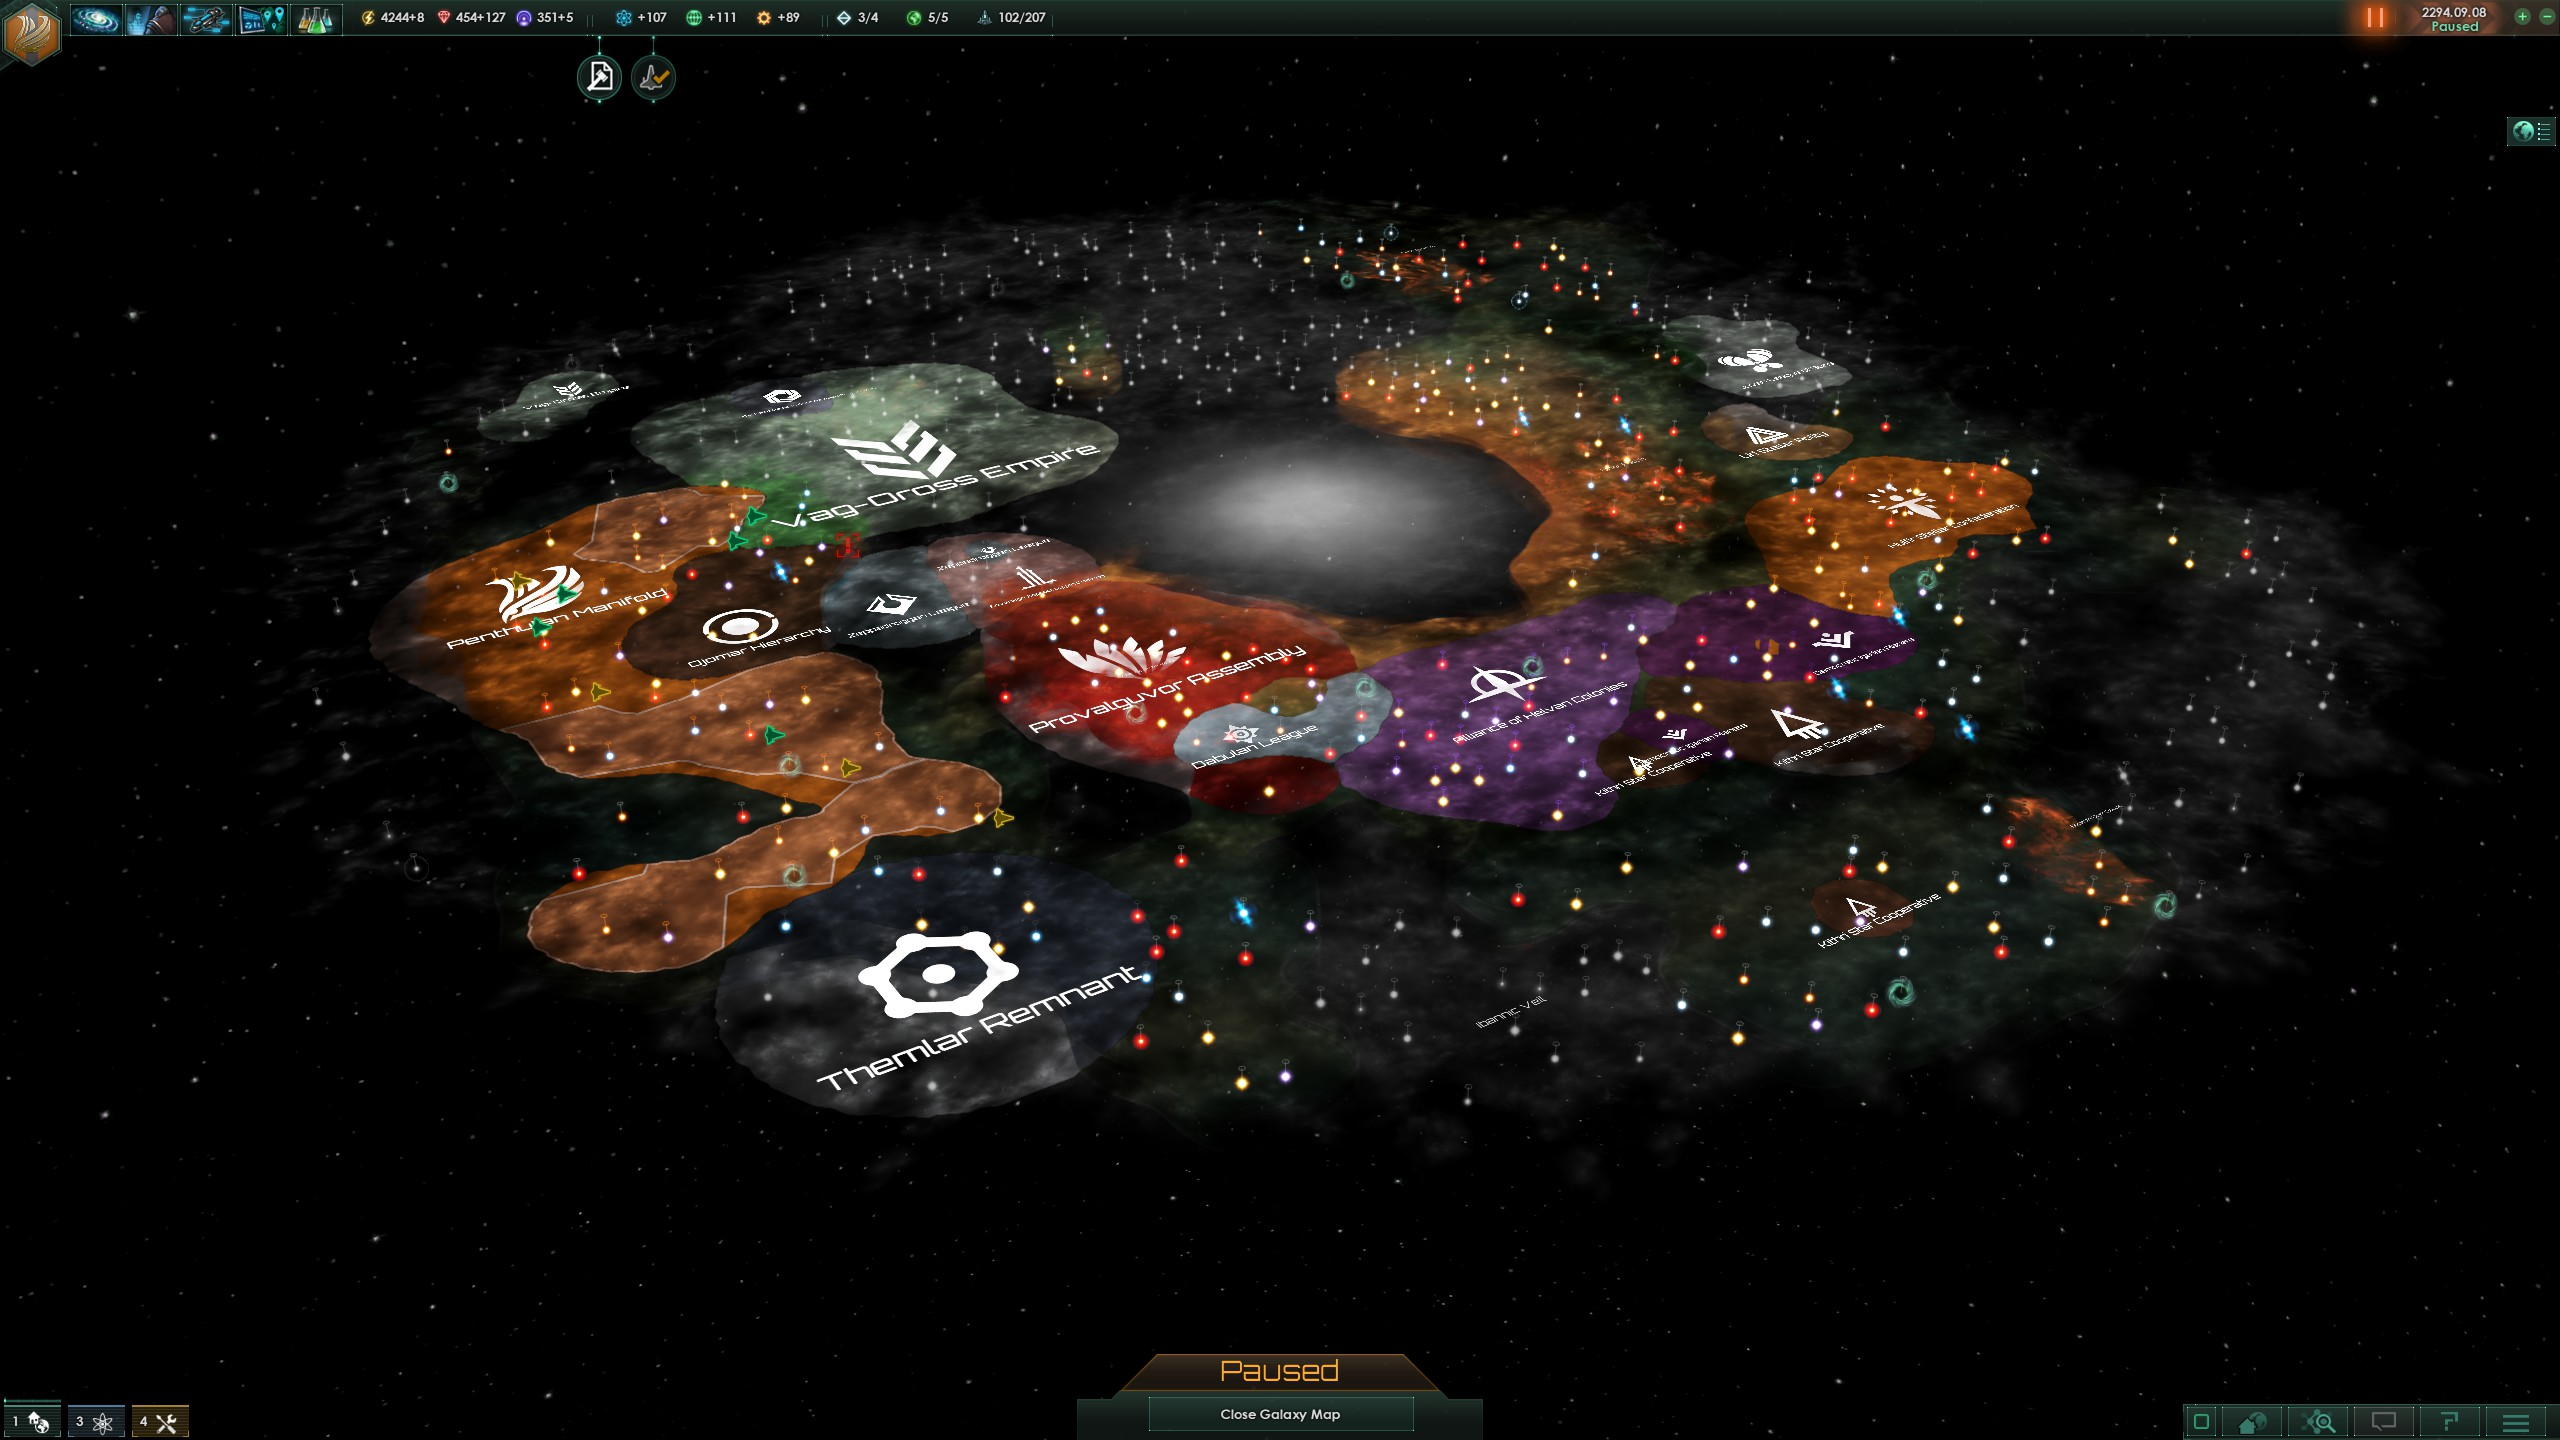 Stellaris outlines future, targets 'galactic community' and 'space